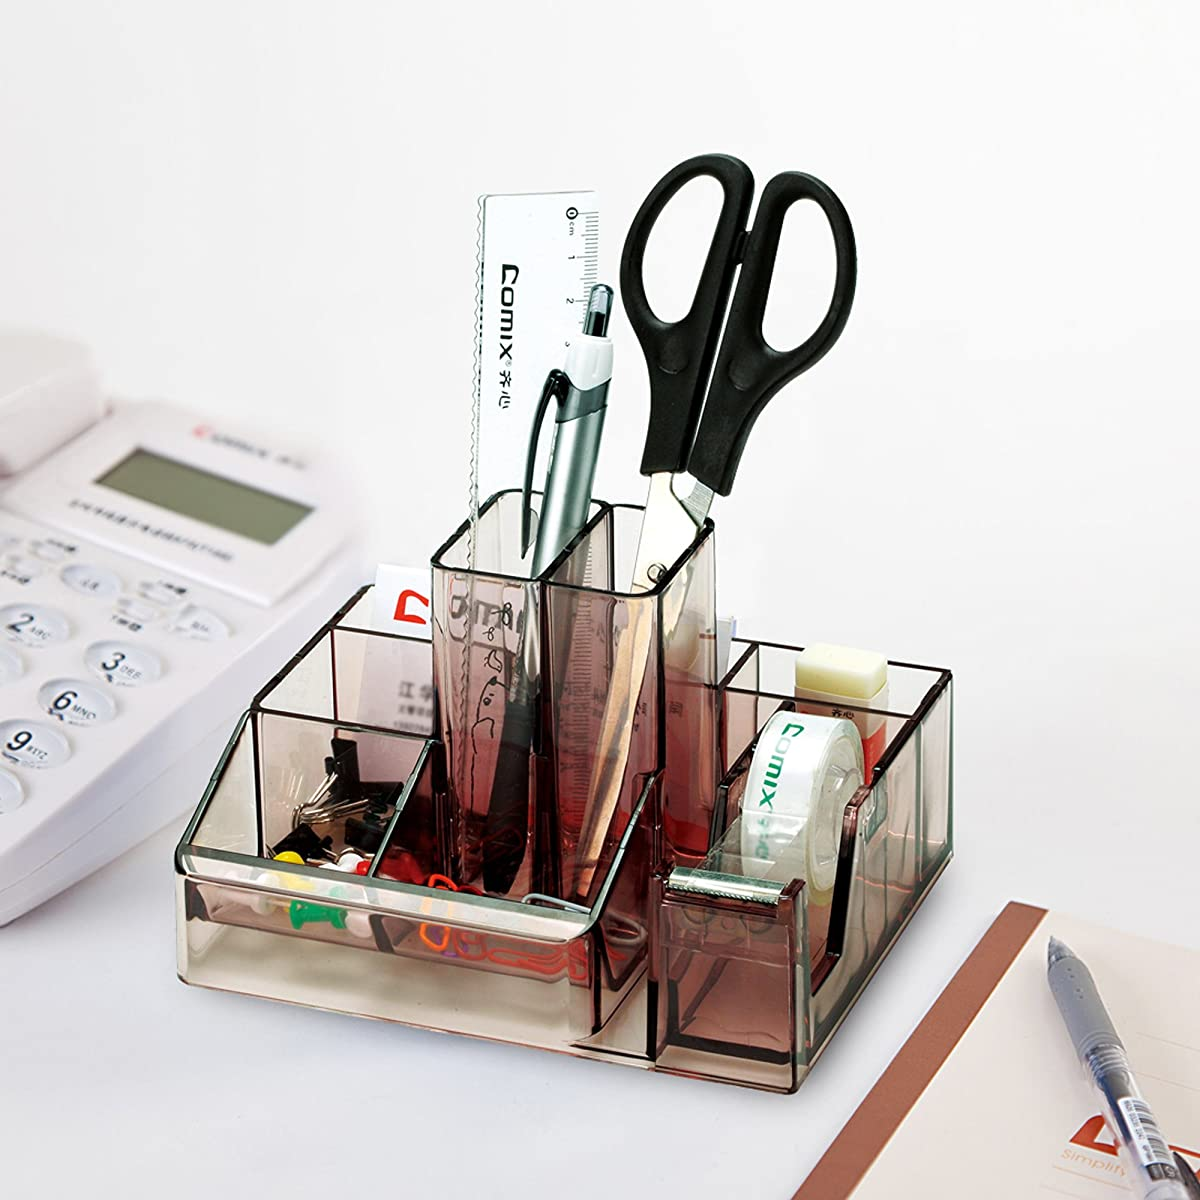 Comix B2250 Office Desk Organizer, 8 Components, Built-in Tape Dispenser, Smoky Grey